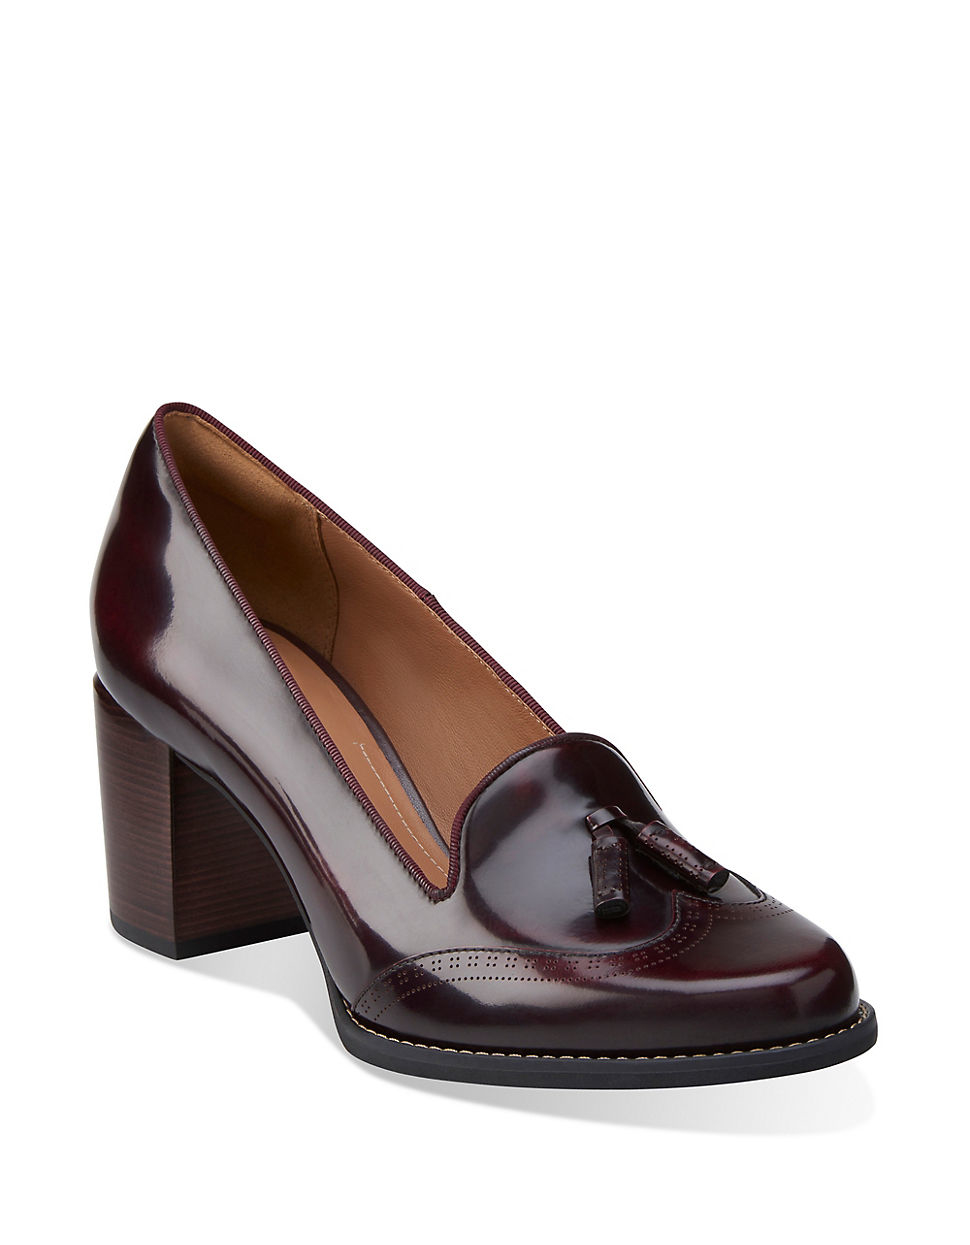 Clarks Tarah Rosie Leather Loafer Pumps In Brown Lyst